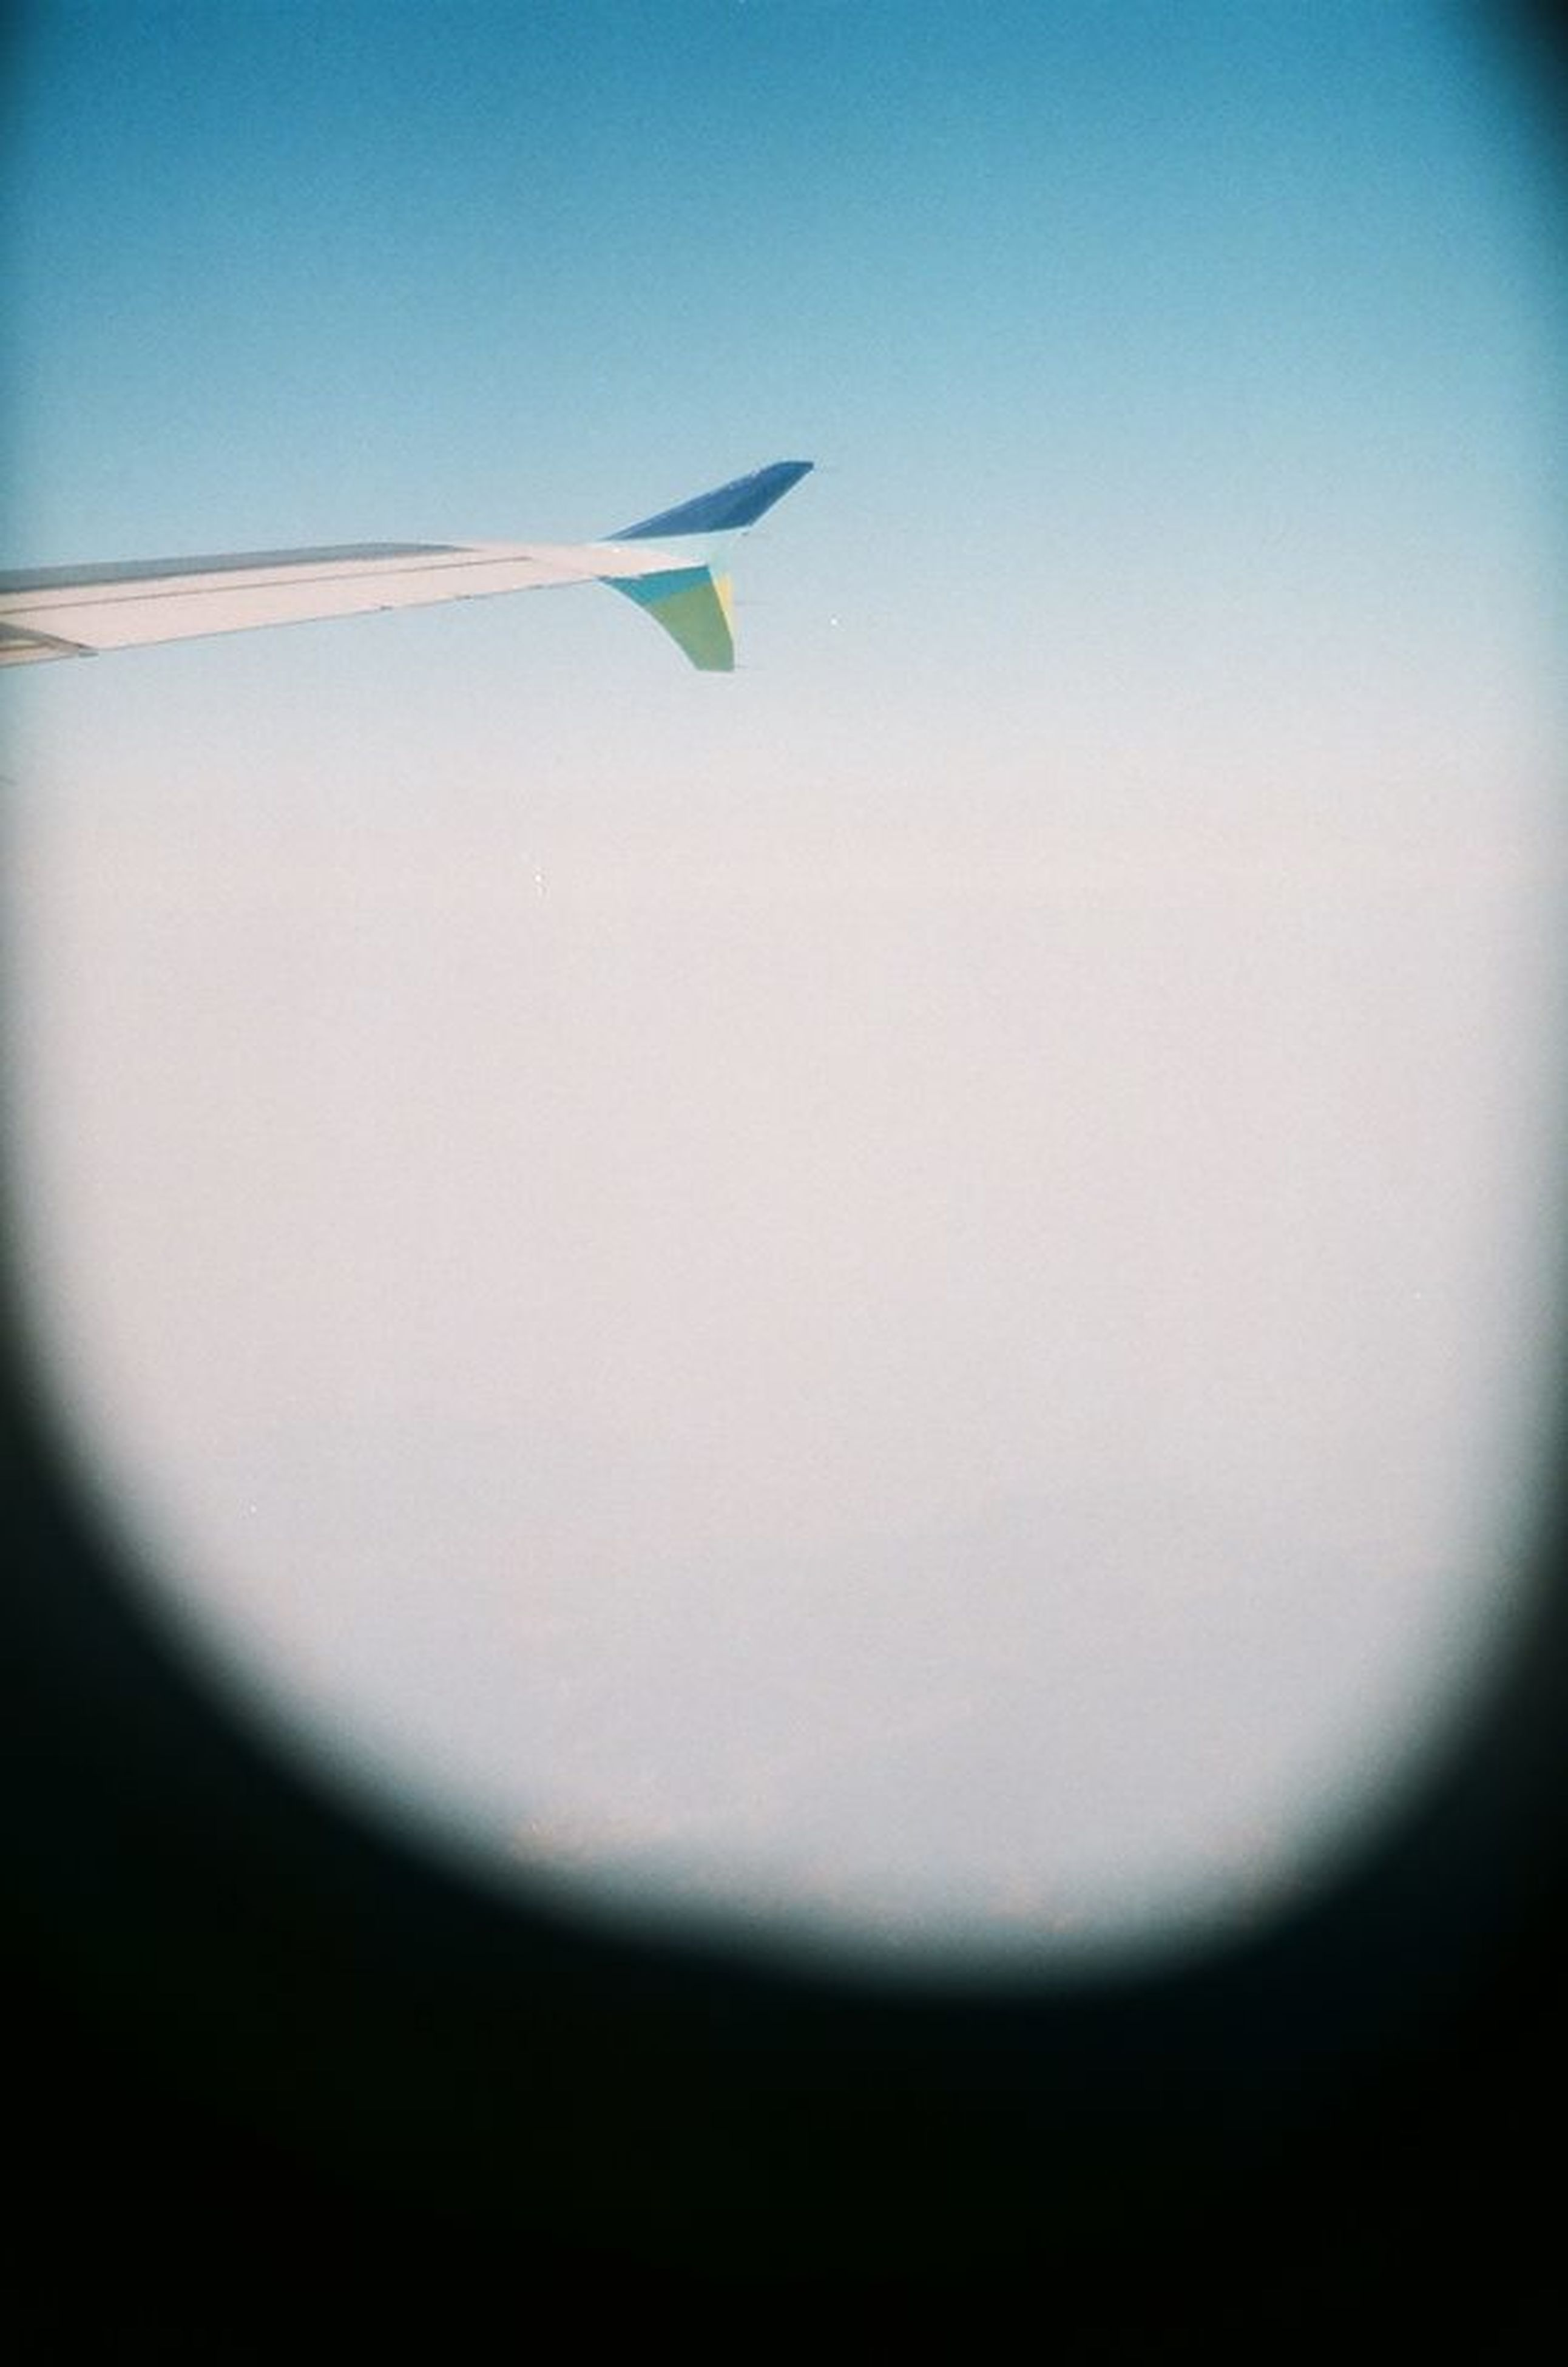 airplane, copy space, indoors, close-up, clear sky, flying, nature, no people, air vehicle, part of, sky, cropped, beauty in nature, transportation, blue, window, white color, white, day, aircraft wing